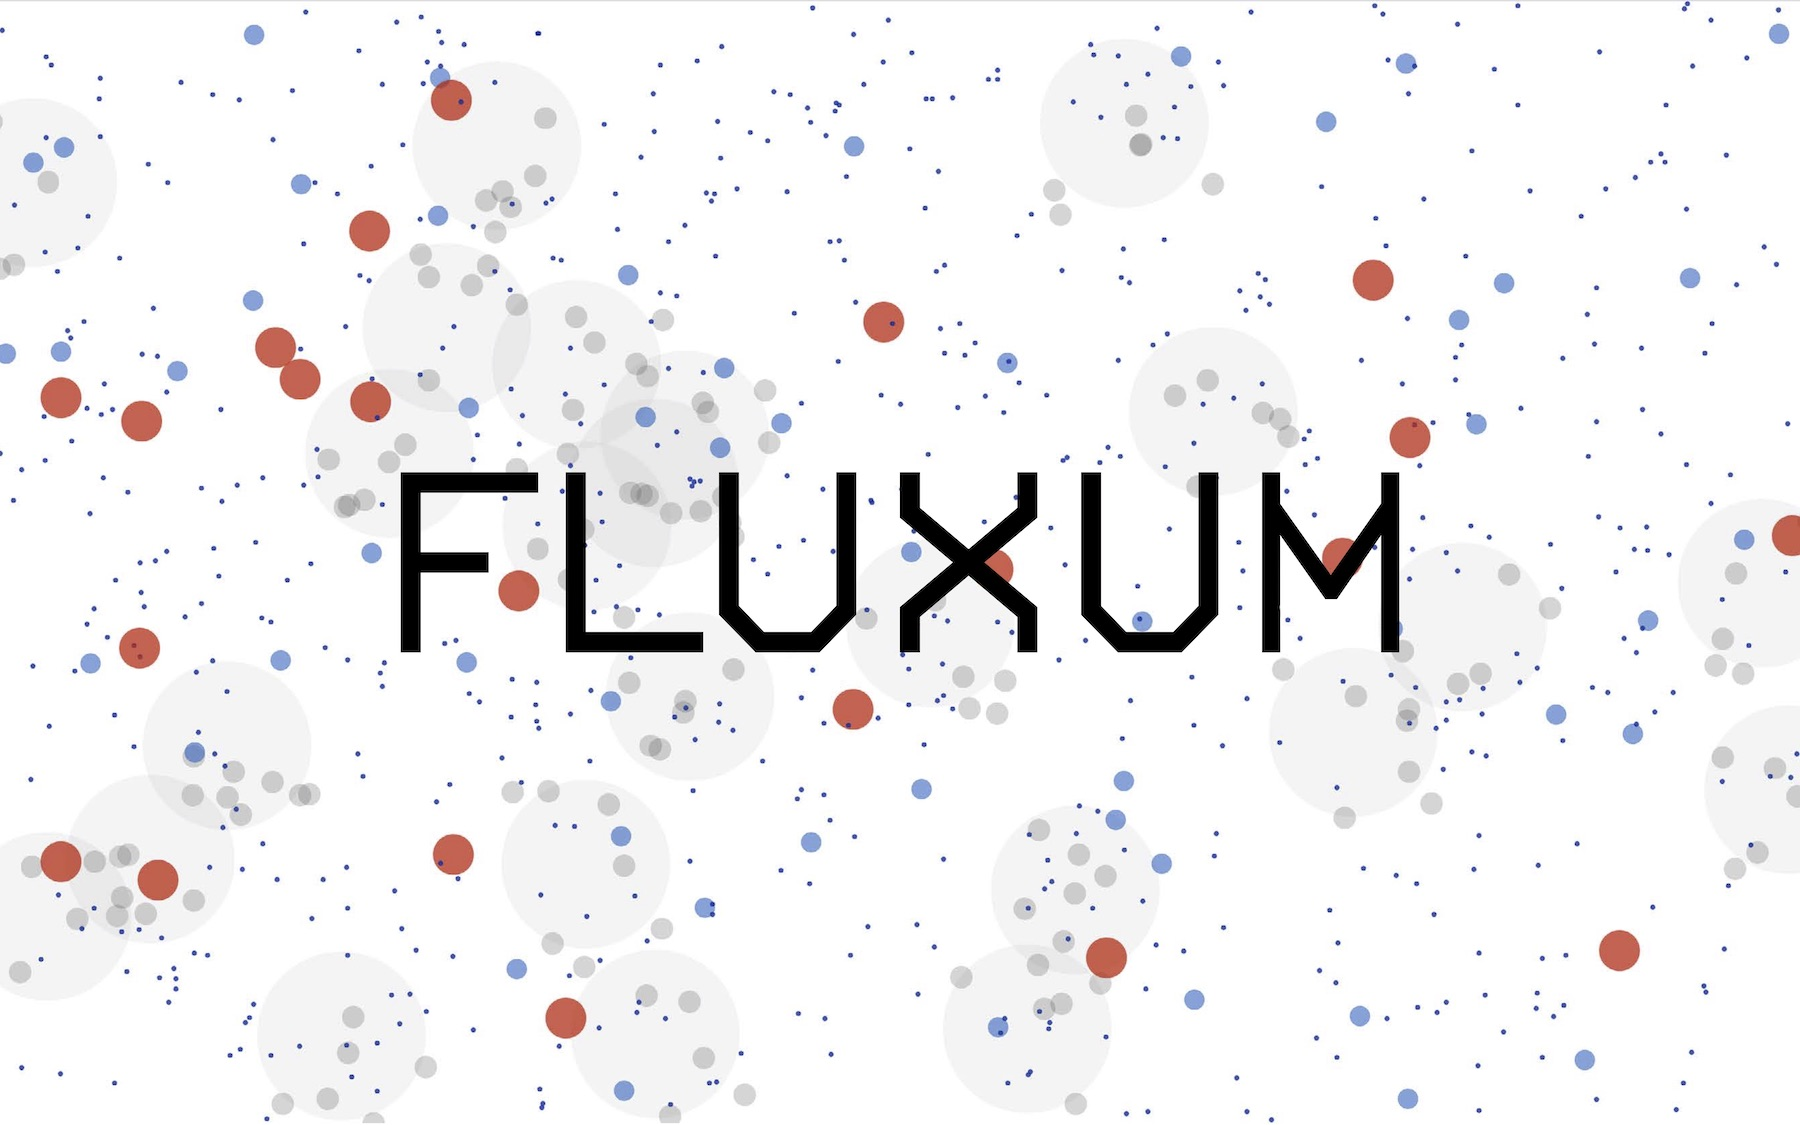 Fluxum in space